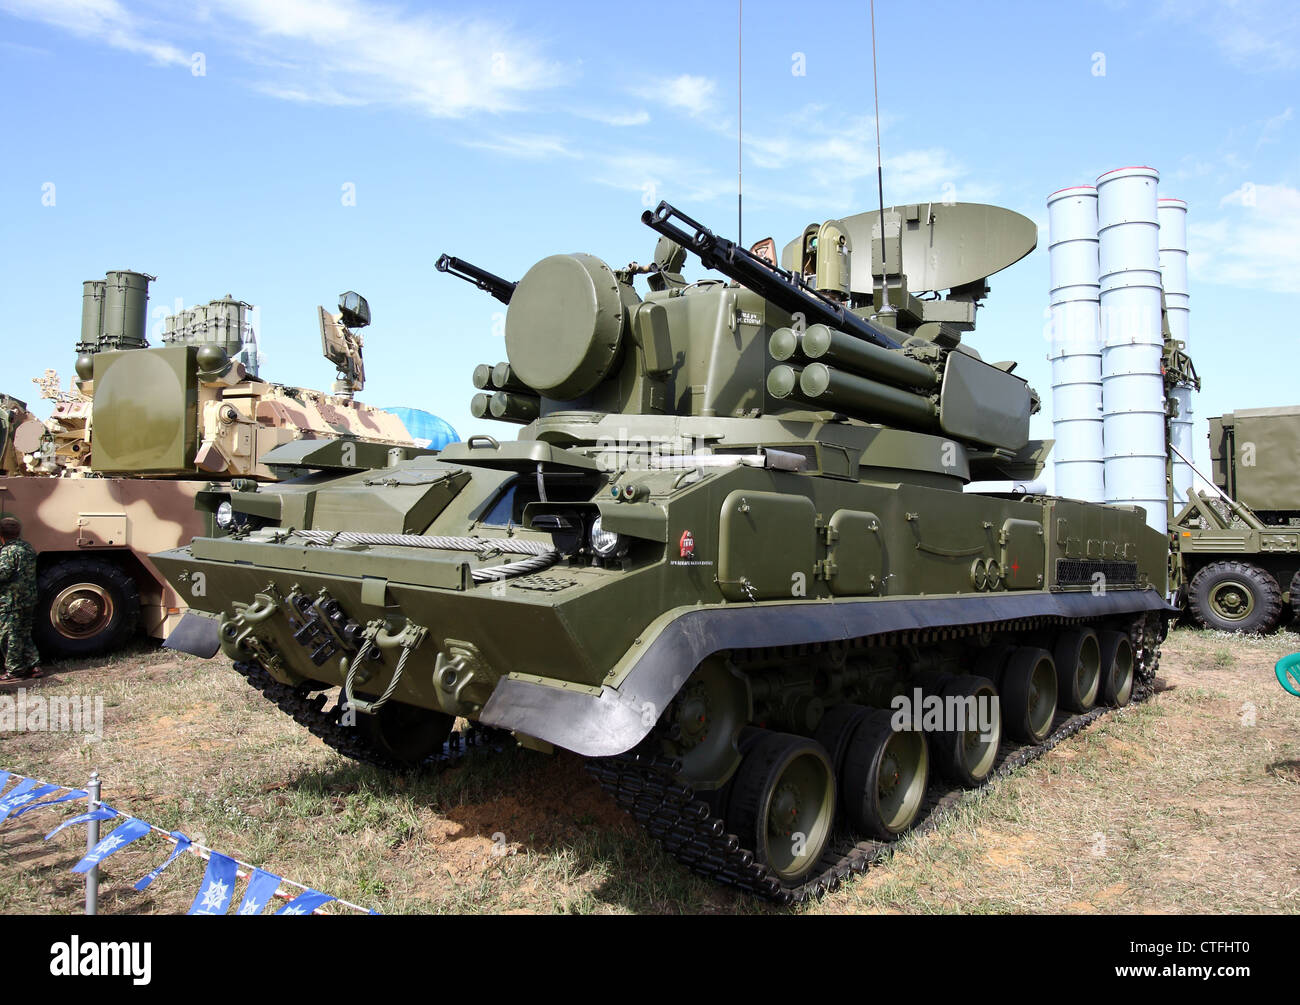 Self Propelled Cart >> Tracked self-propelled anti-aircraft weapon armed with a Stock Photo: 49515760 - Alamy